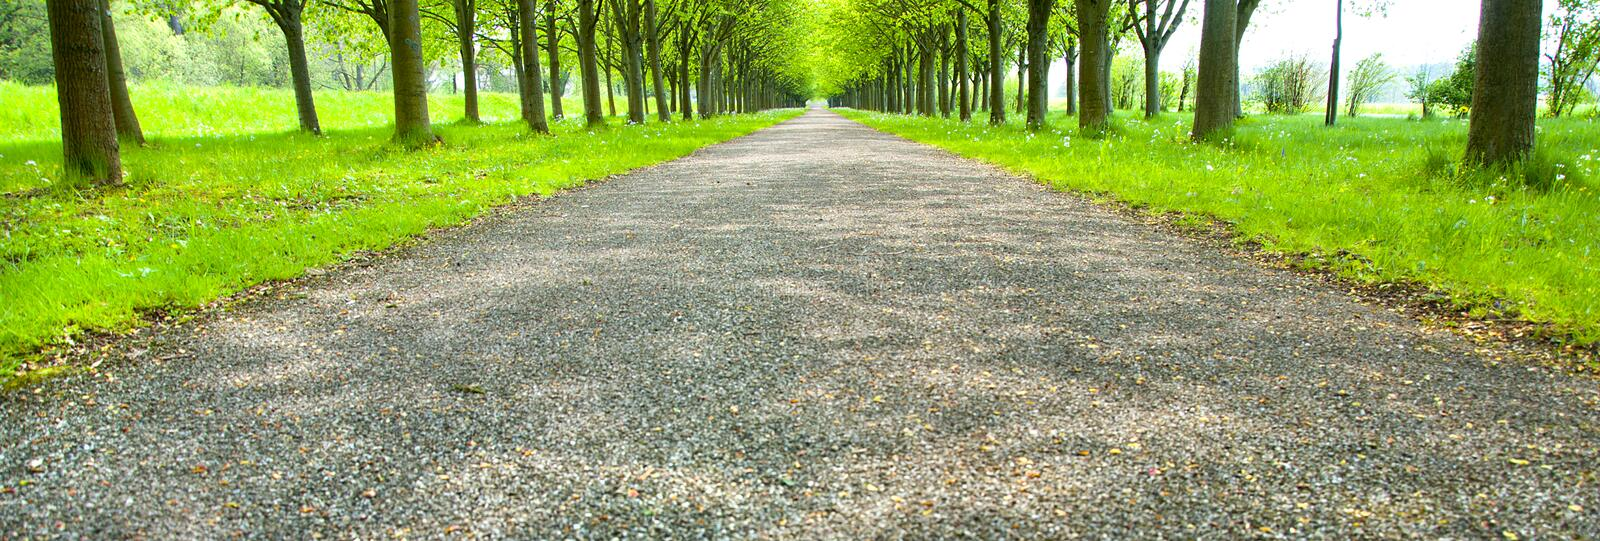 Endless Canopy Road Stock Image